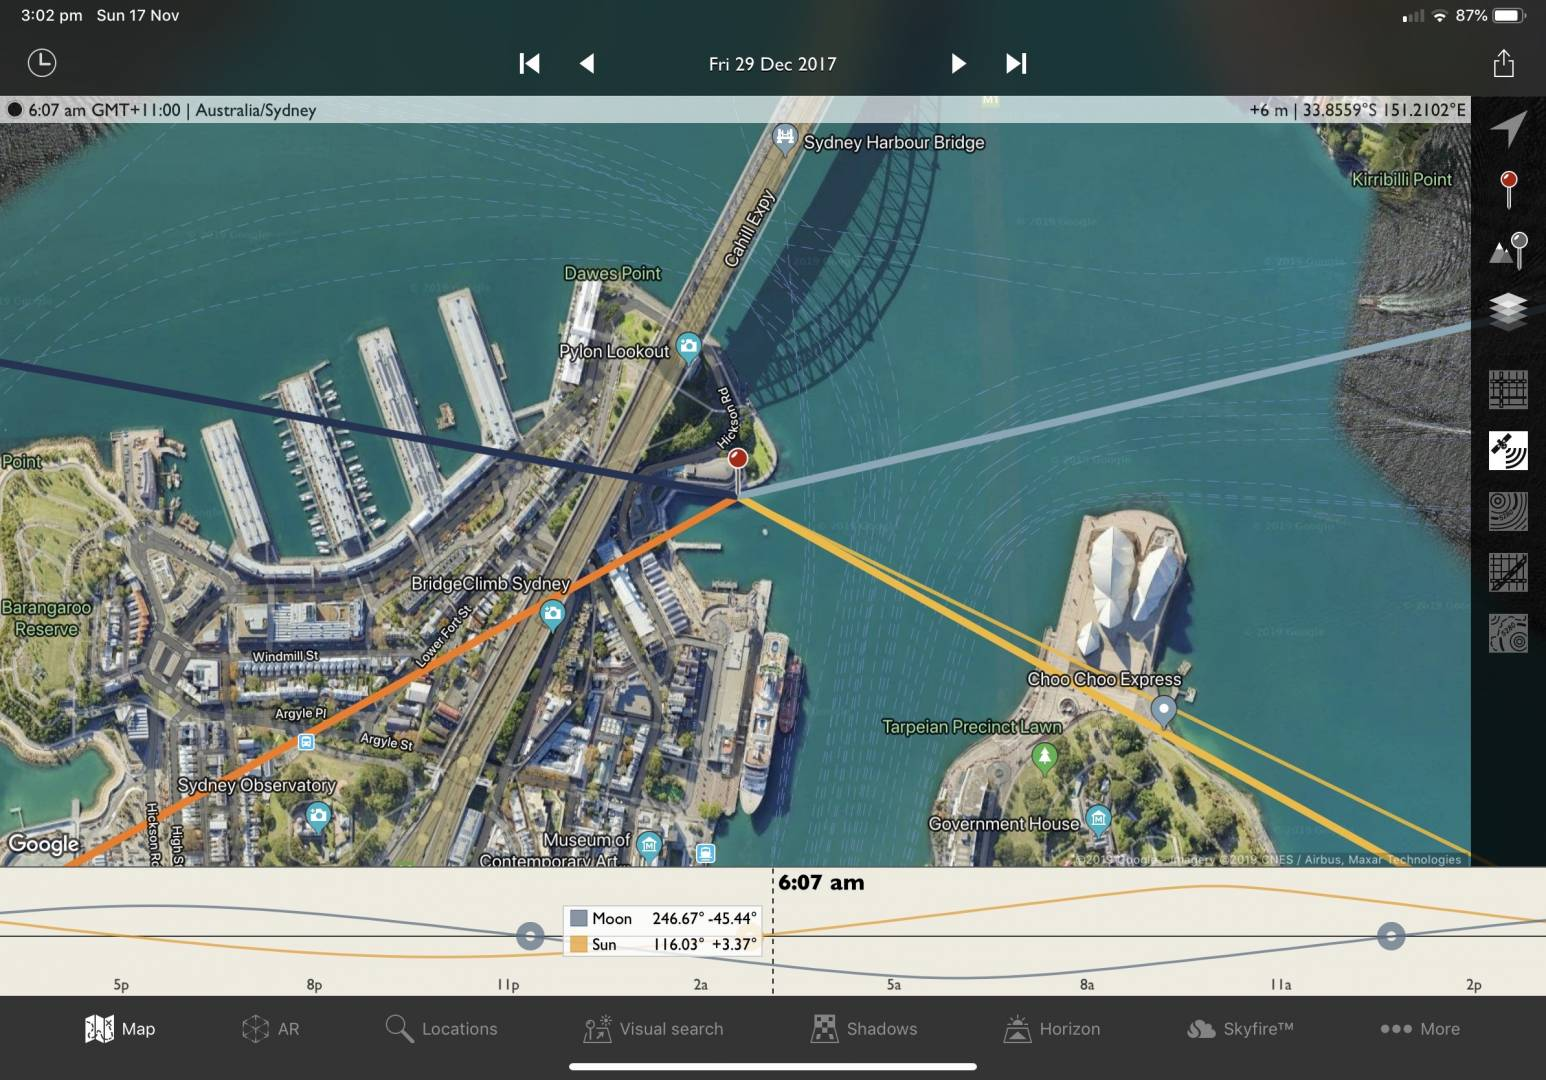 My planned shot in TPE, ironically with cruise ship in position